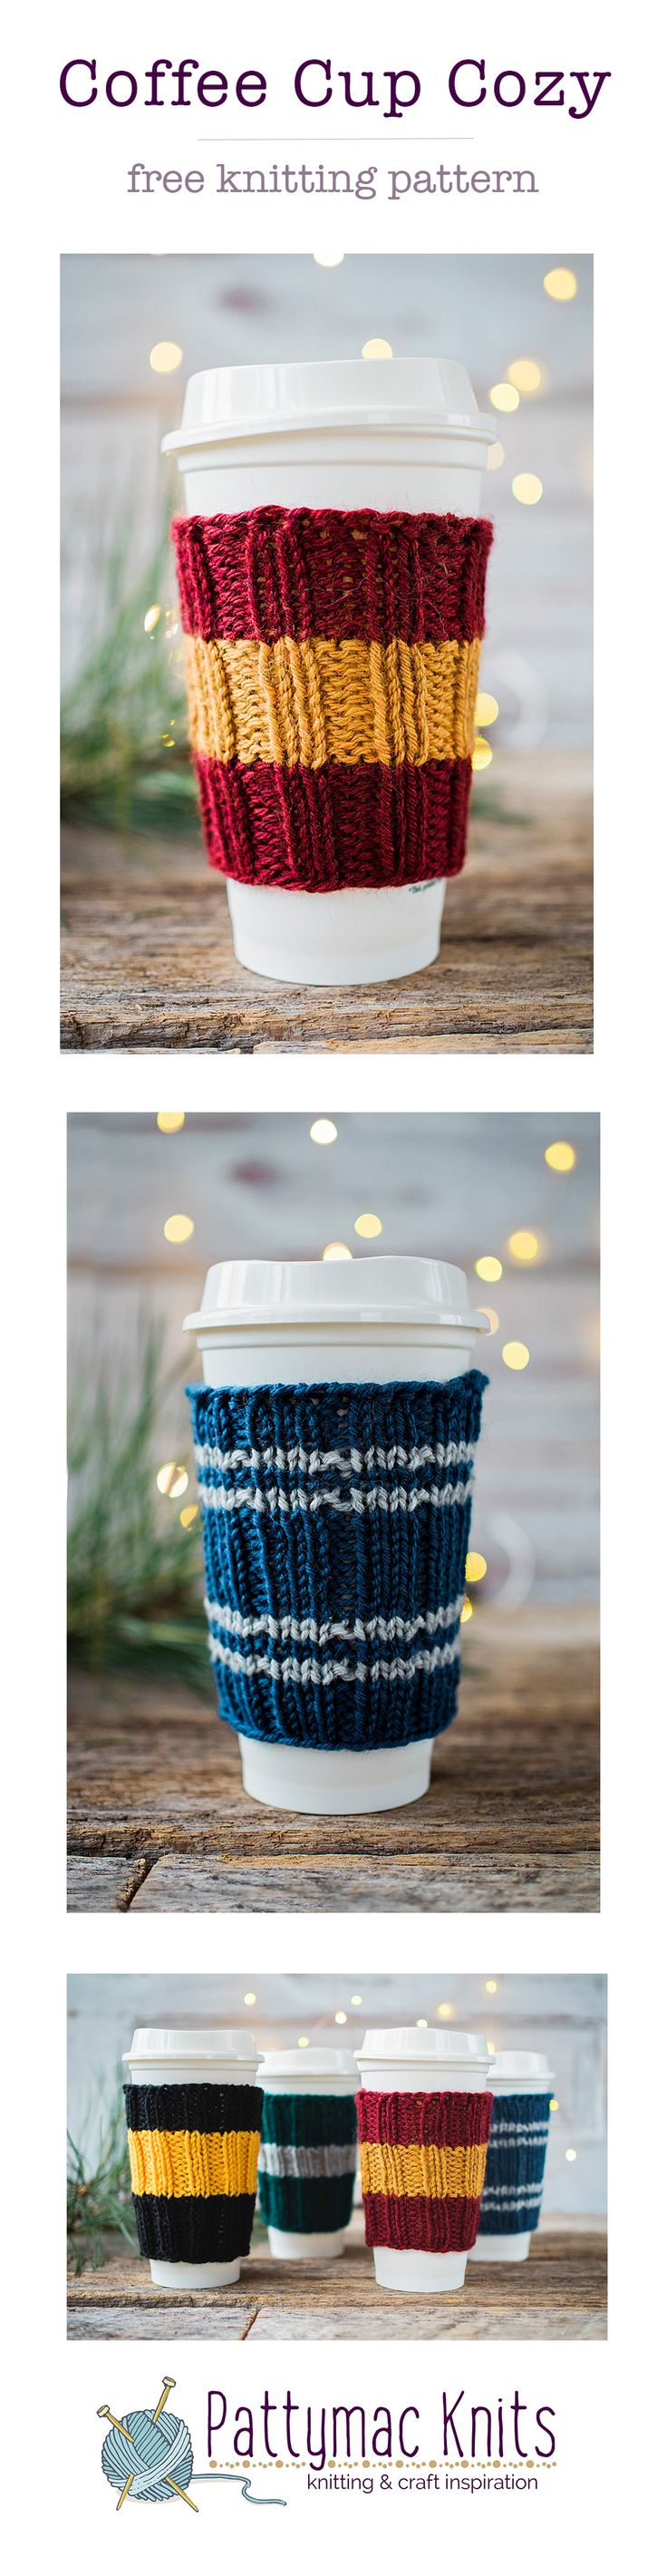 Free Knitting Pattern for Hogwarts inspired Coffee Cup Cozies, Free printable pattern in the blog story. Easy and fast to make! Perfect handmade gifts. | Pattymac Knits